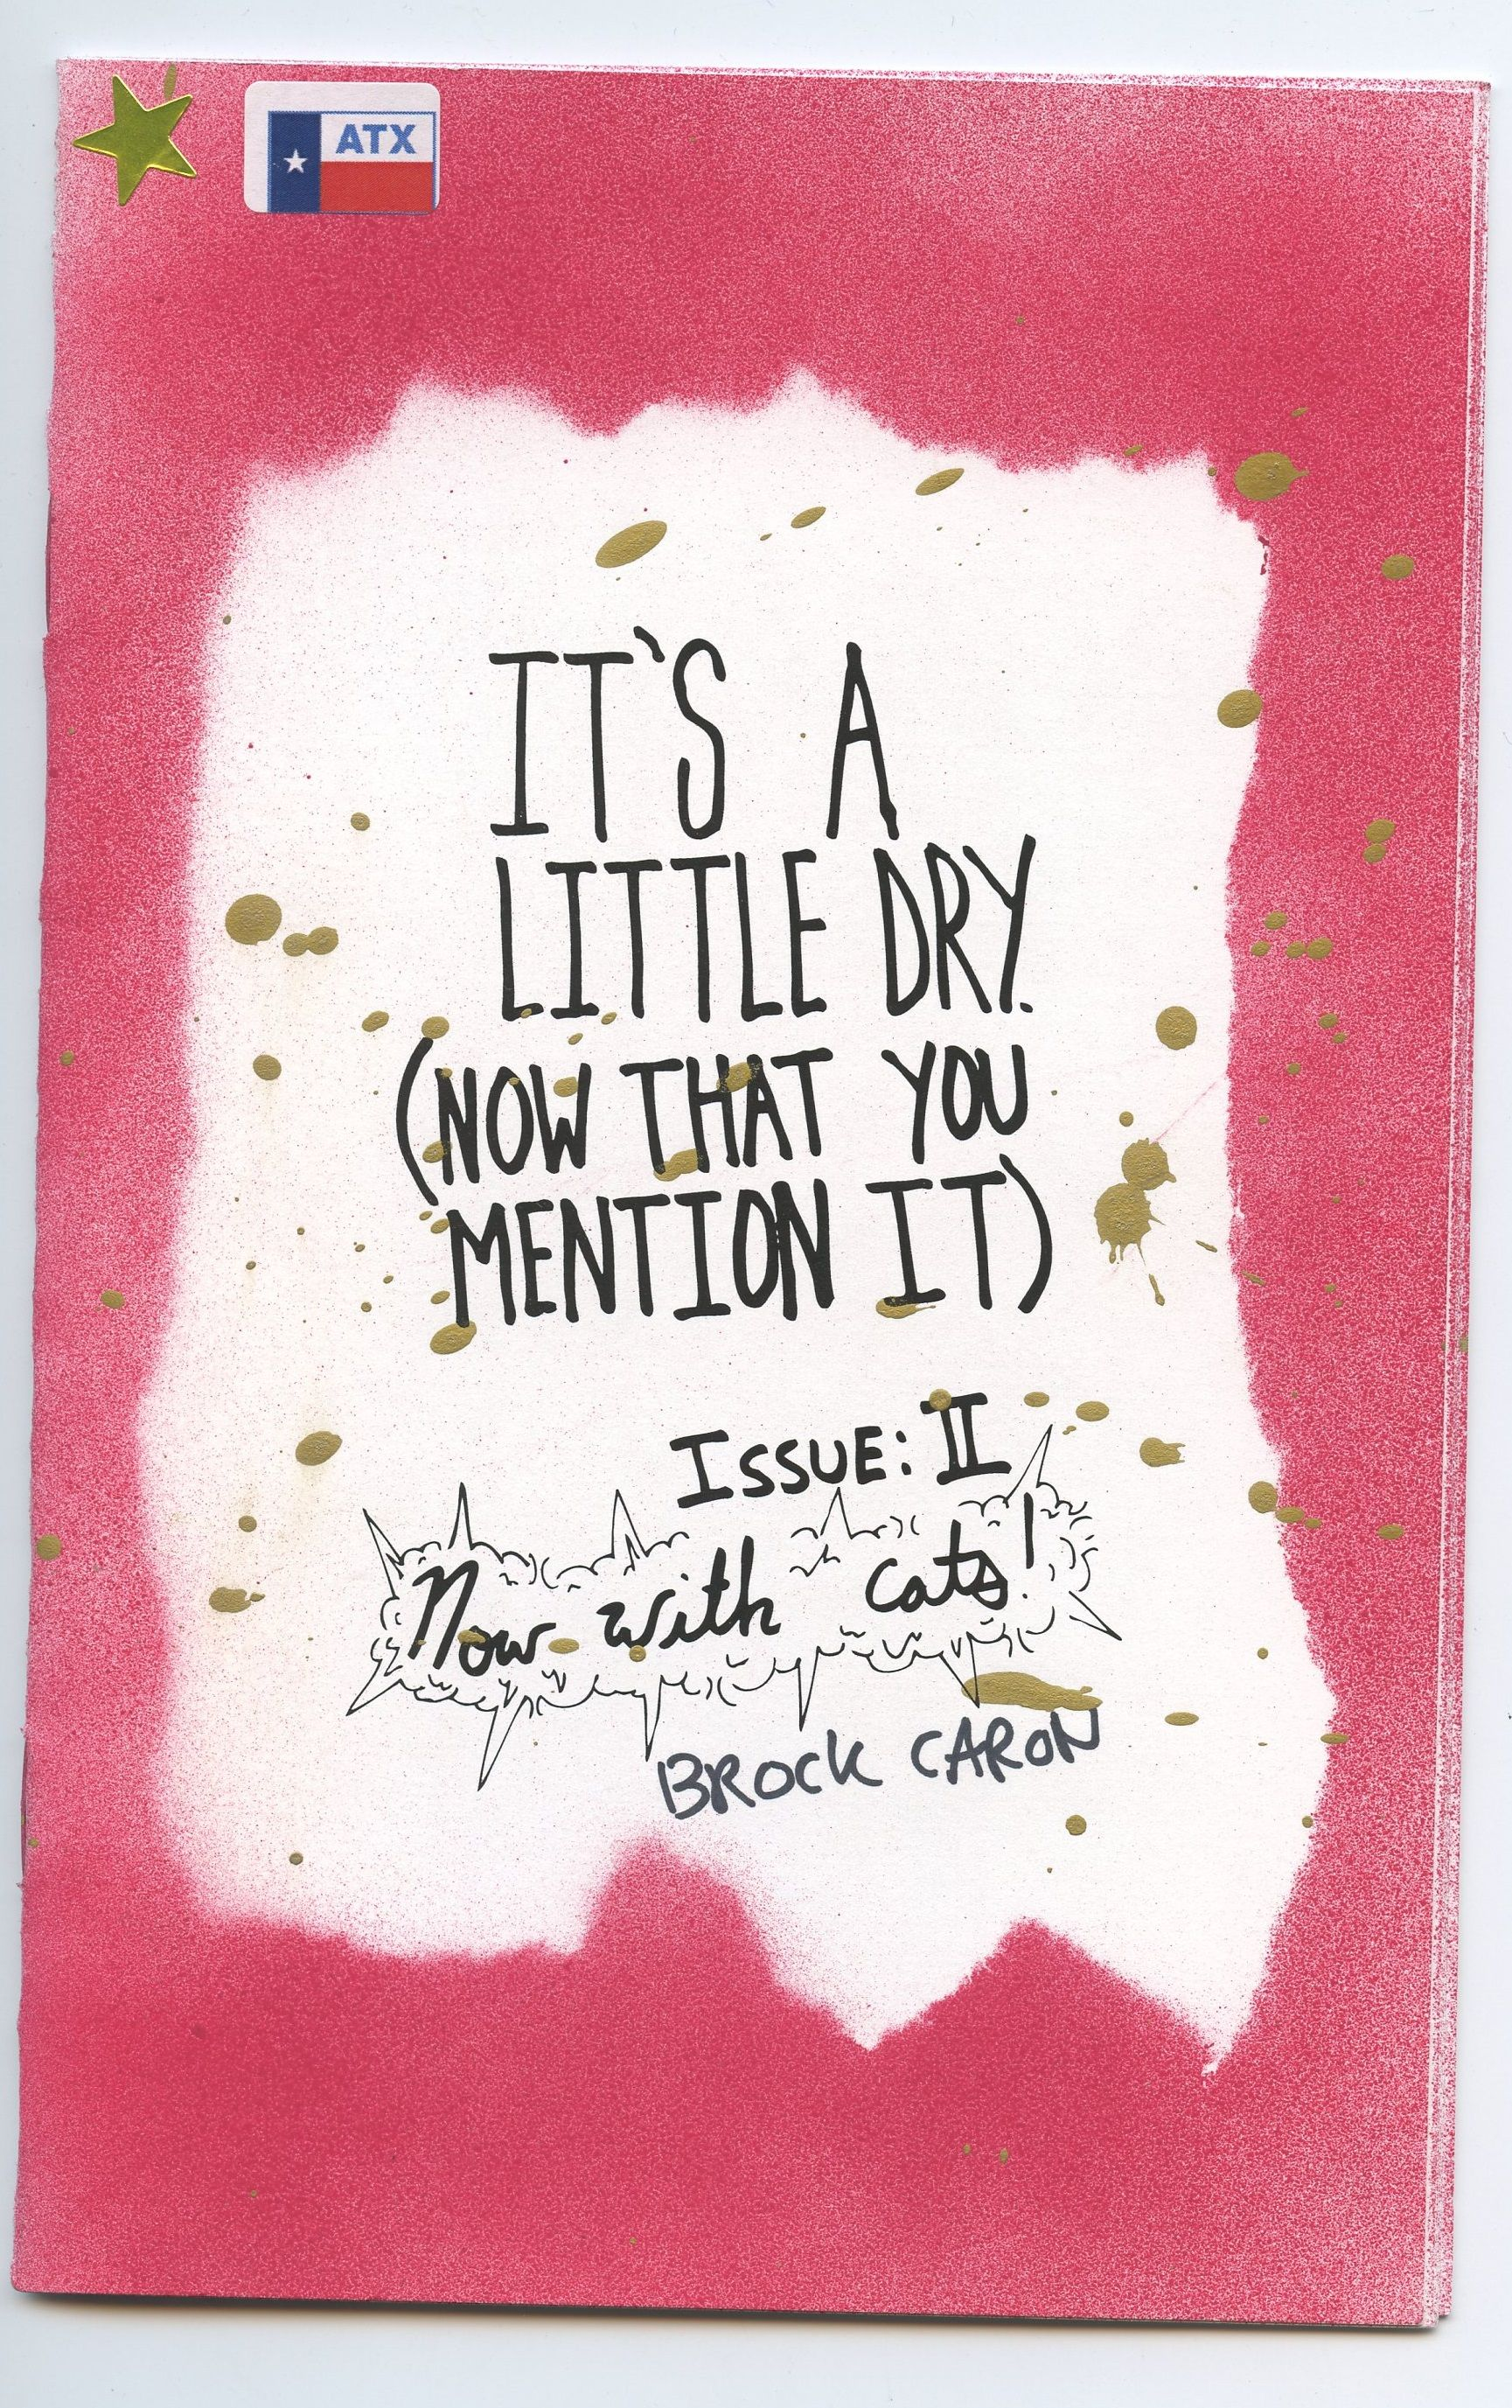 It's a Little Dry. (Now That You Mention It) 2 by Brock Caron #austinpubliclibrary #zine